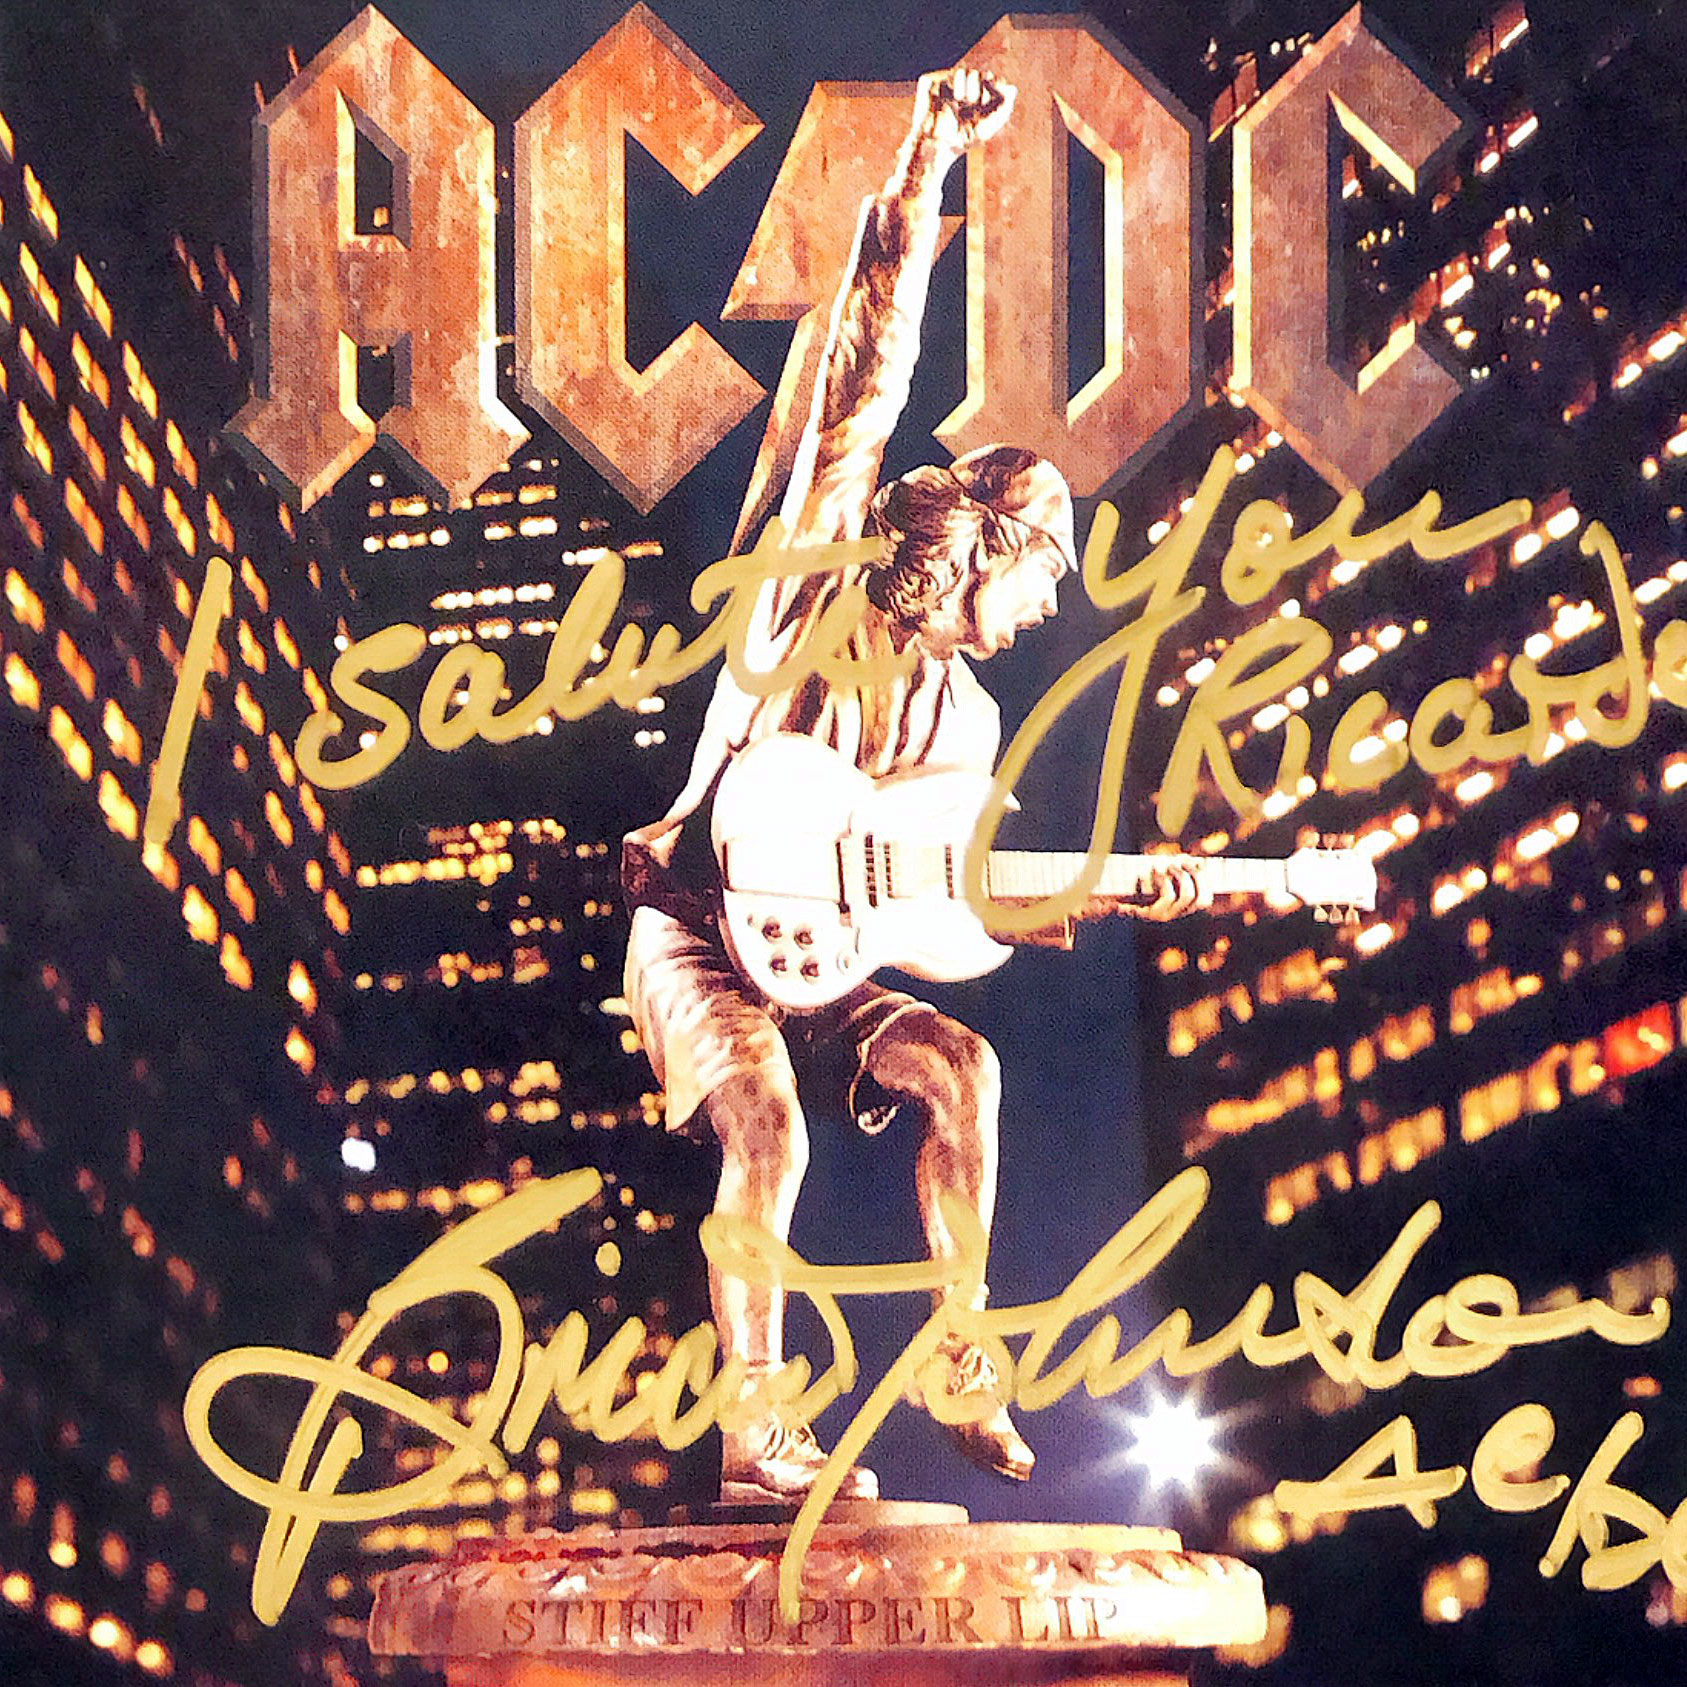 AC/DC: Brian Johnson Singer, Autograph by Mail